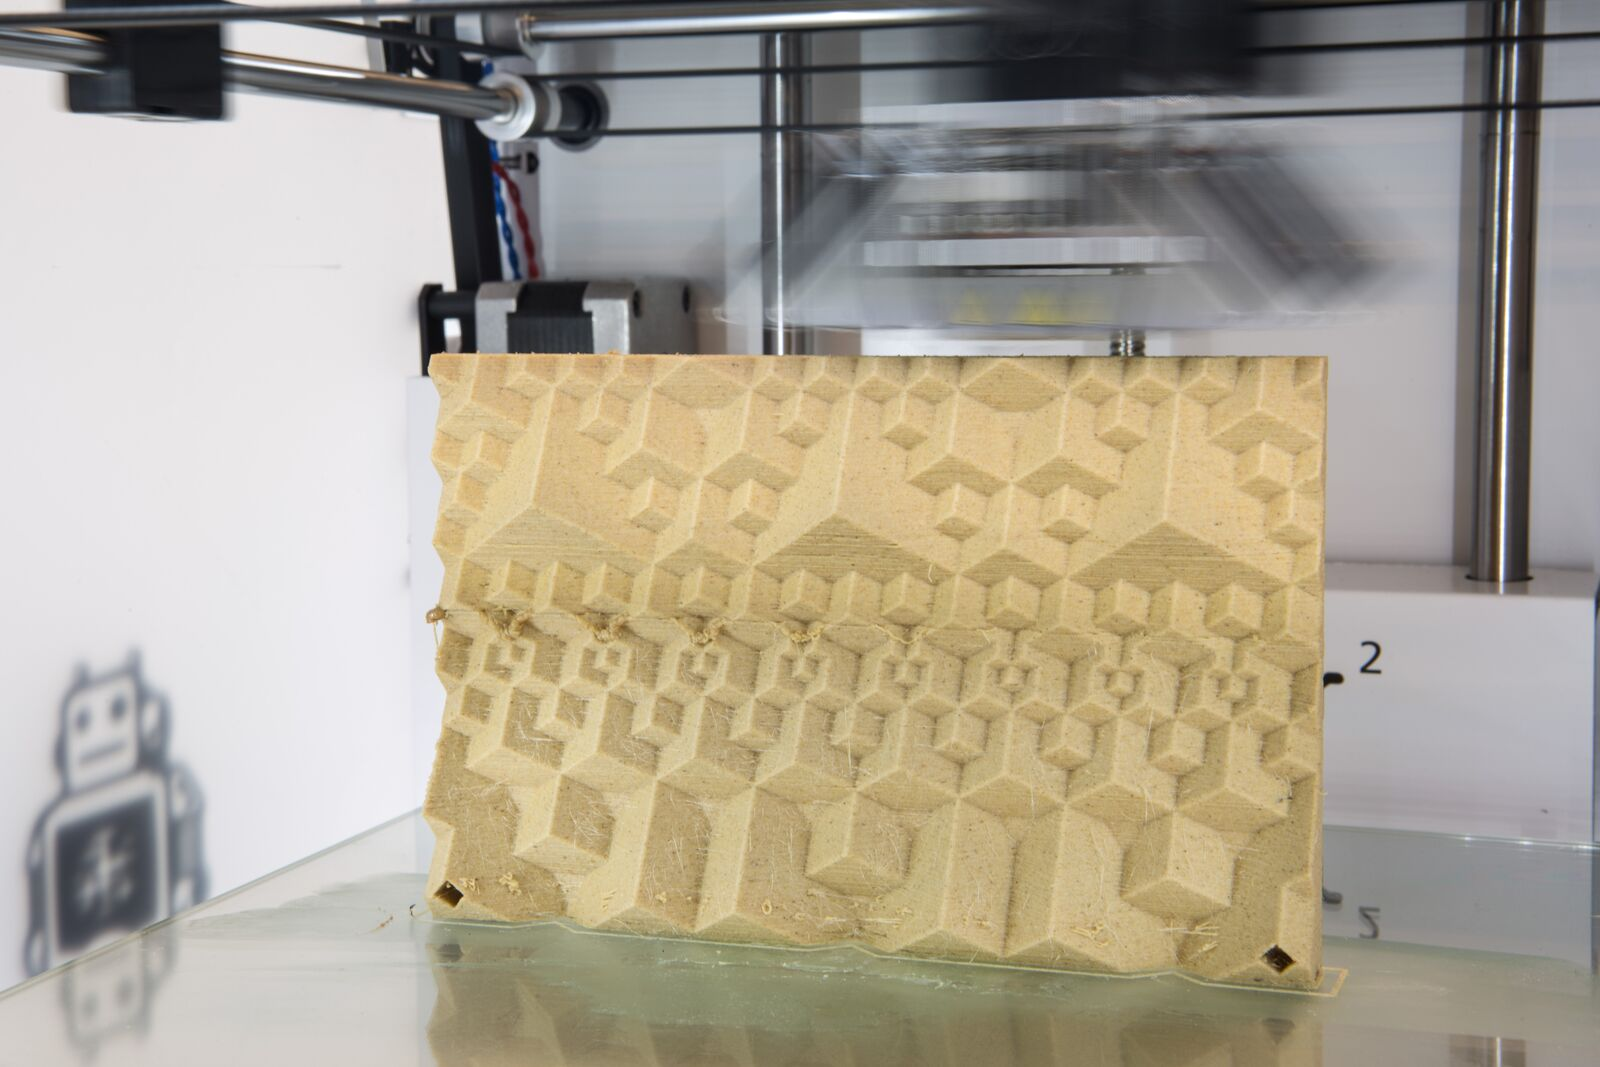 Design Your Best in Heijmans' 3D Printed Wall Cladding Contest